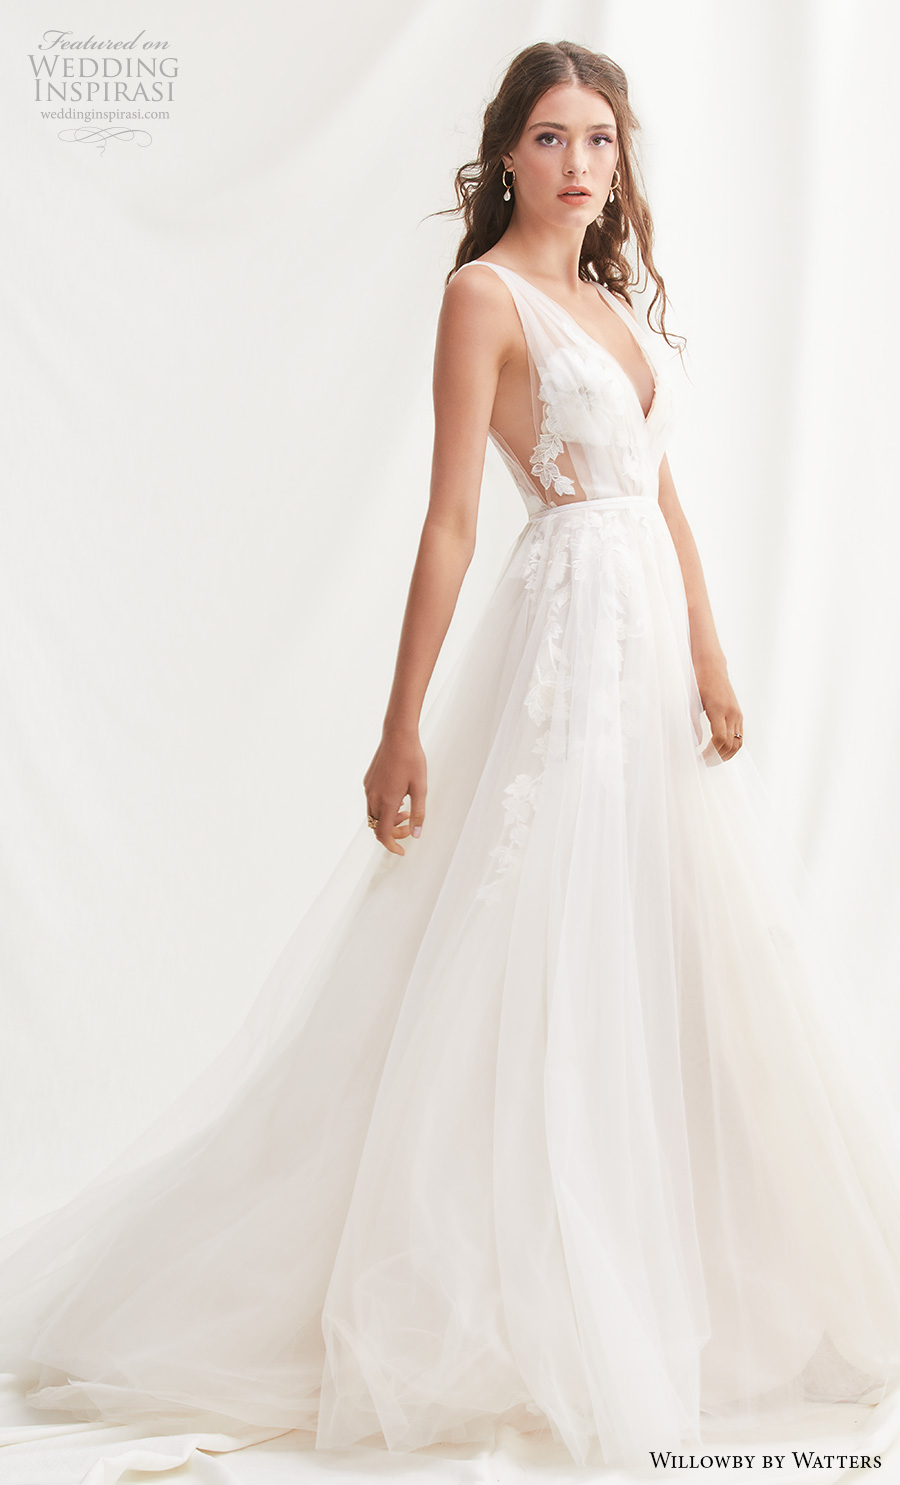 willowby by watters spring 2019 bridal sleeveless deep v neck heavily embellished bodice open side romantic a  line wedding dress backless v back chapel train (3) mv